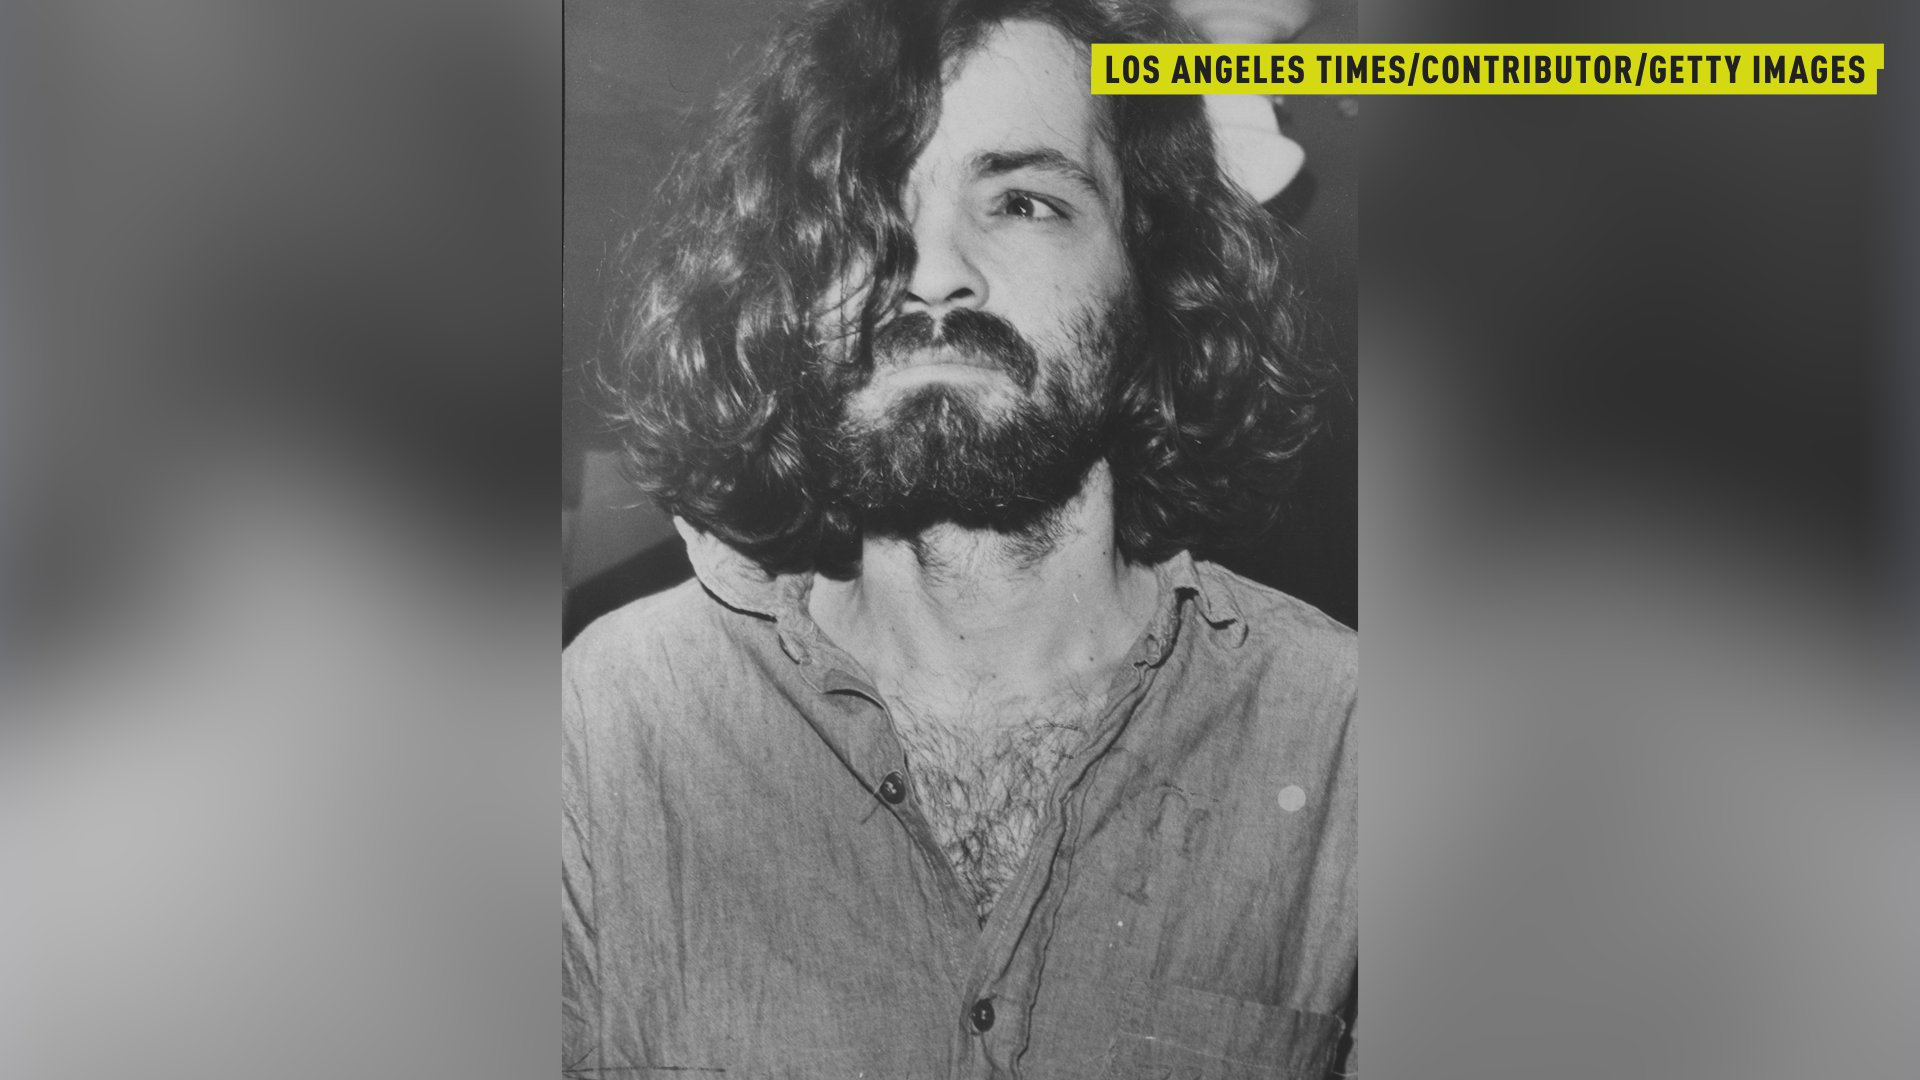 A Documentary Filmmaker Spoke To Charles Manson During The Last Year Of Cult Leaders Life Here Is His Story